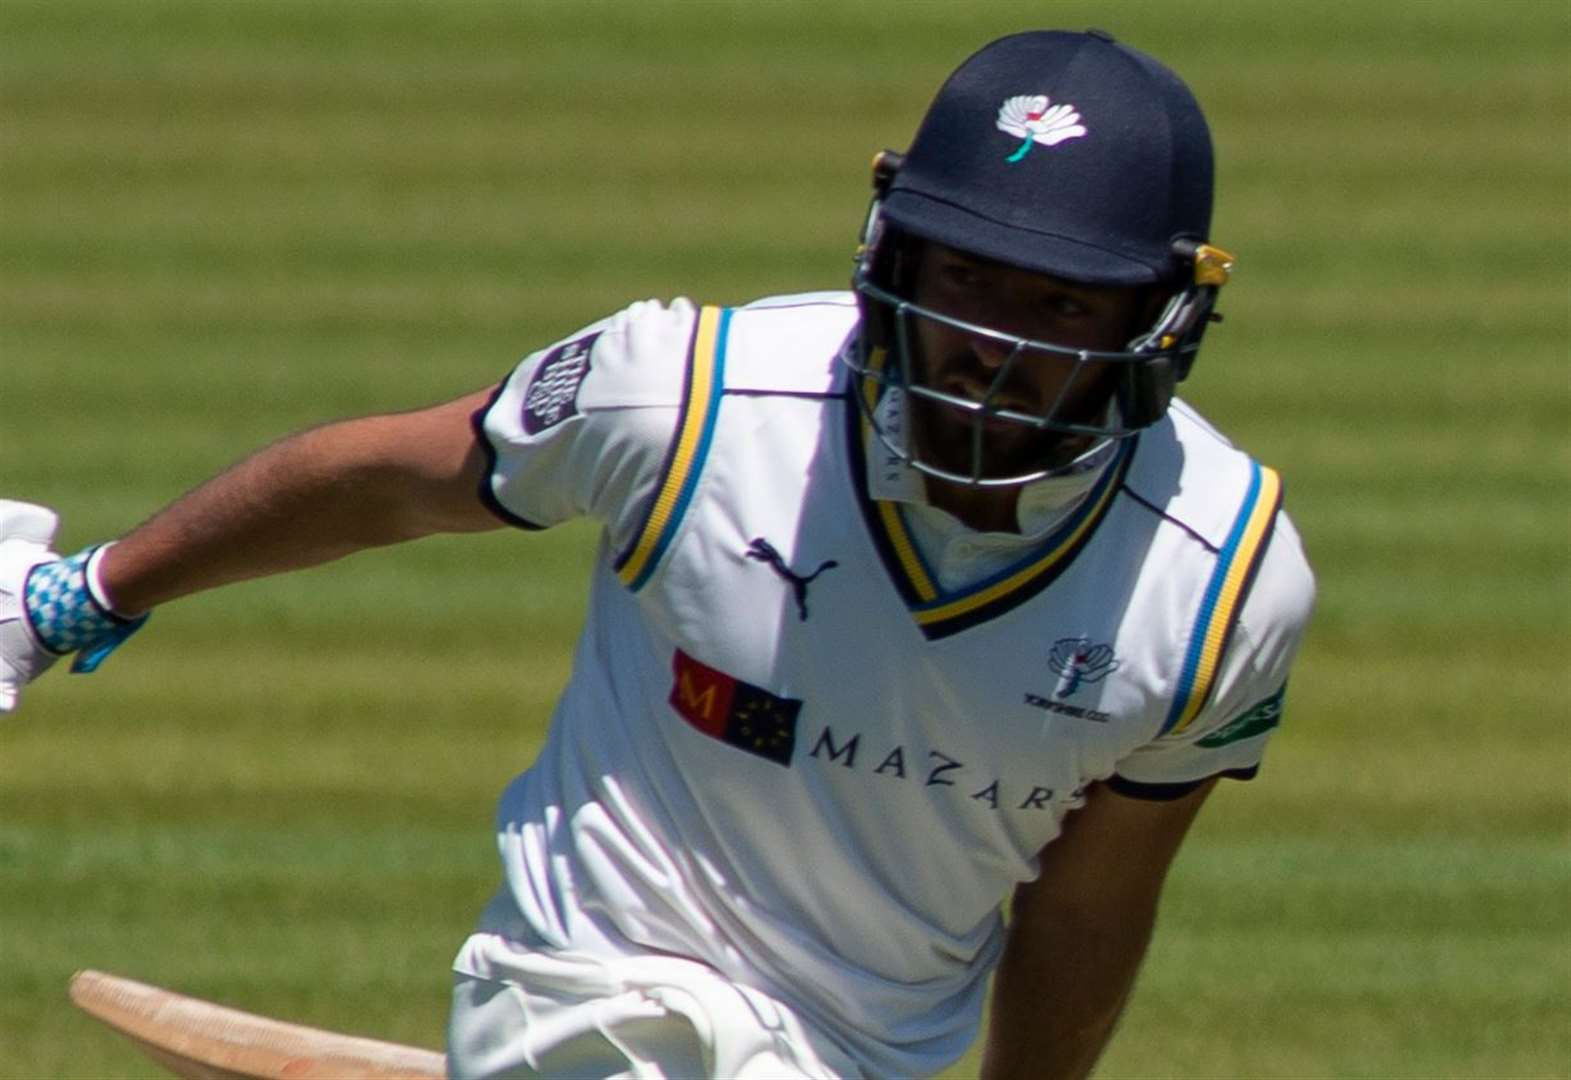 Jack Leaning hits unbeaten century for Kent against Sussex